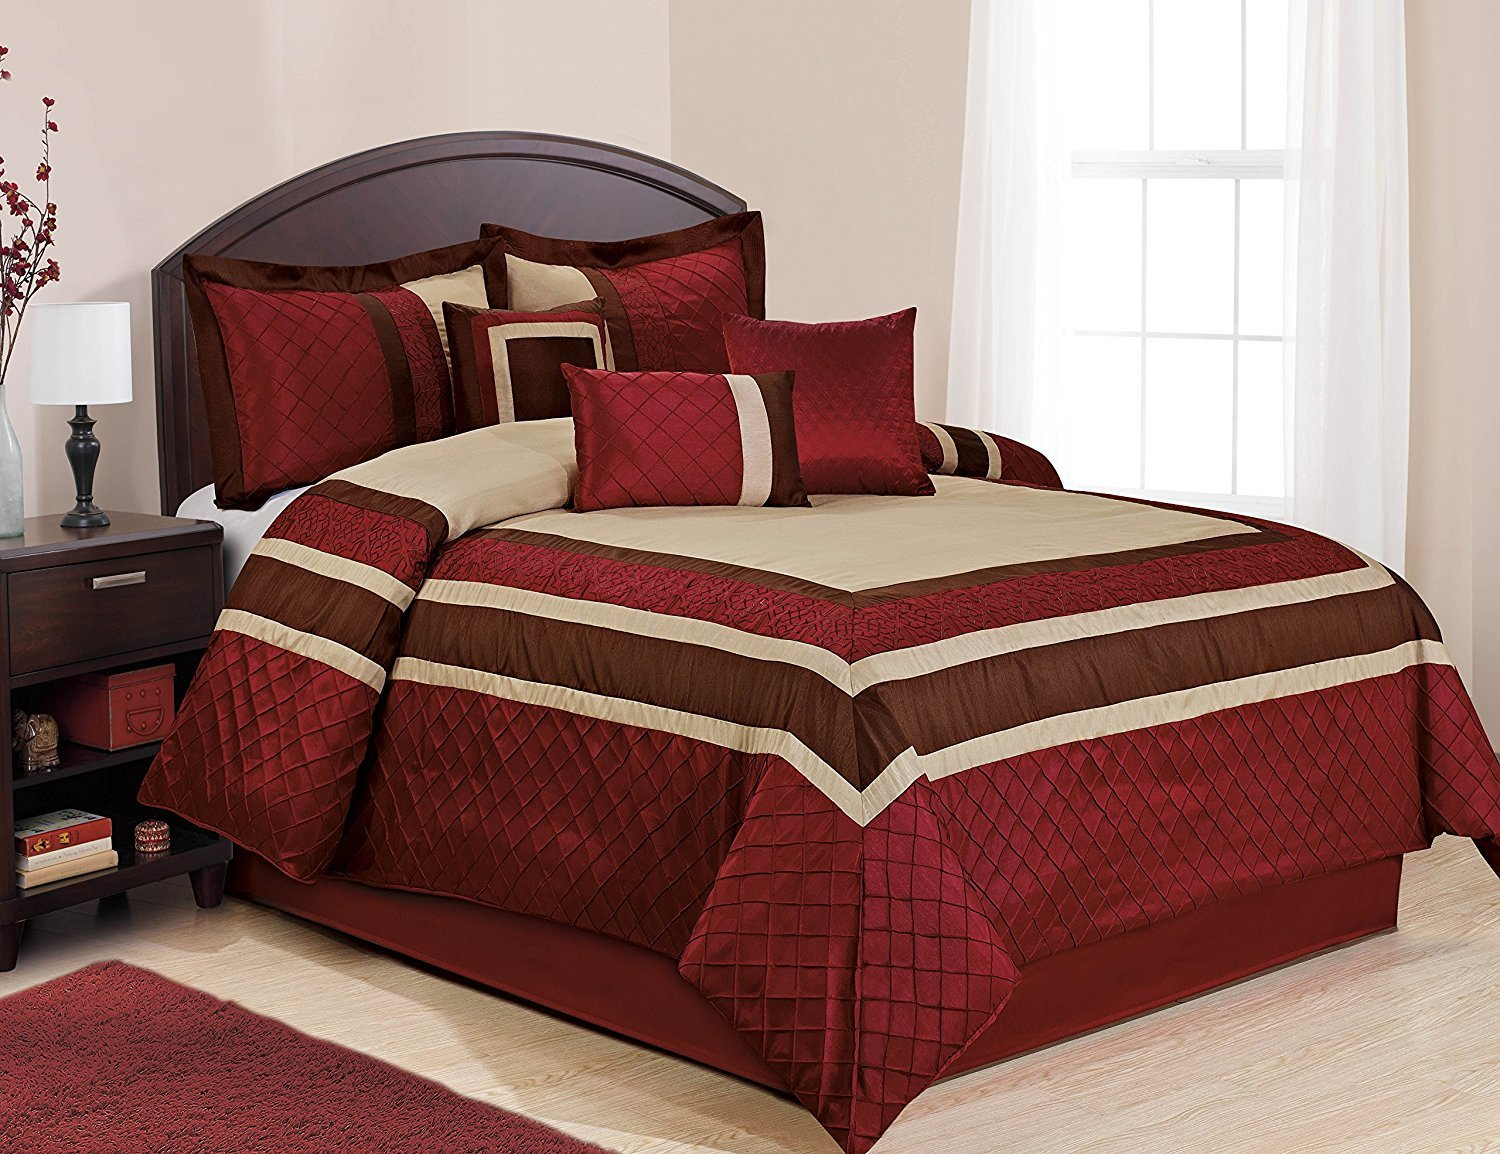 Amazon com 7 piece mya red bed in a bag comforter sets queen king cal king size cal king home kitchen